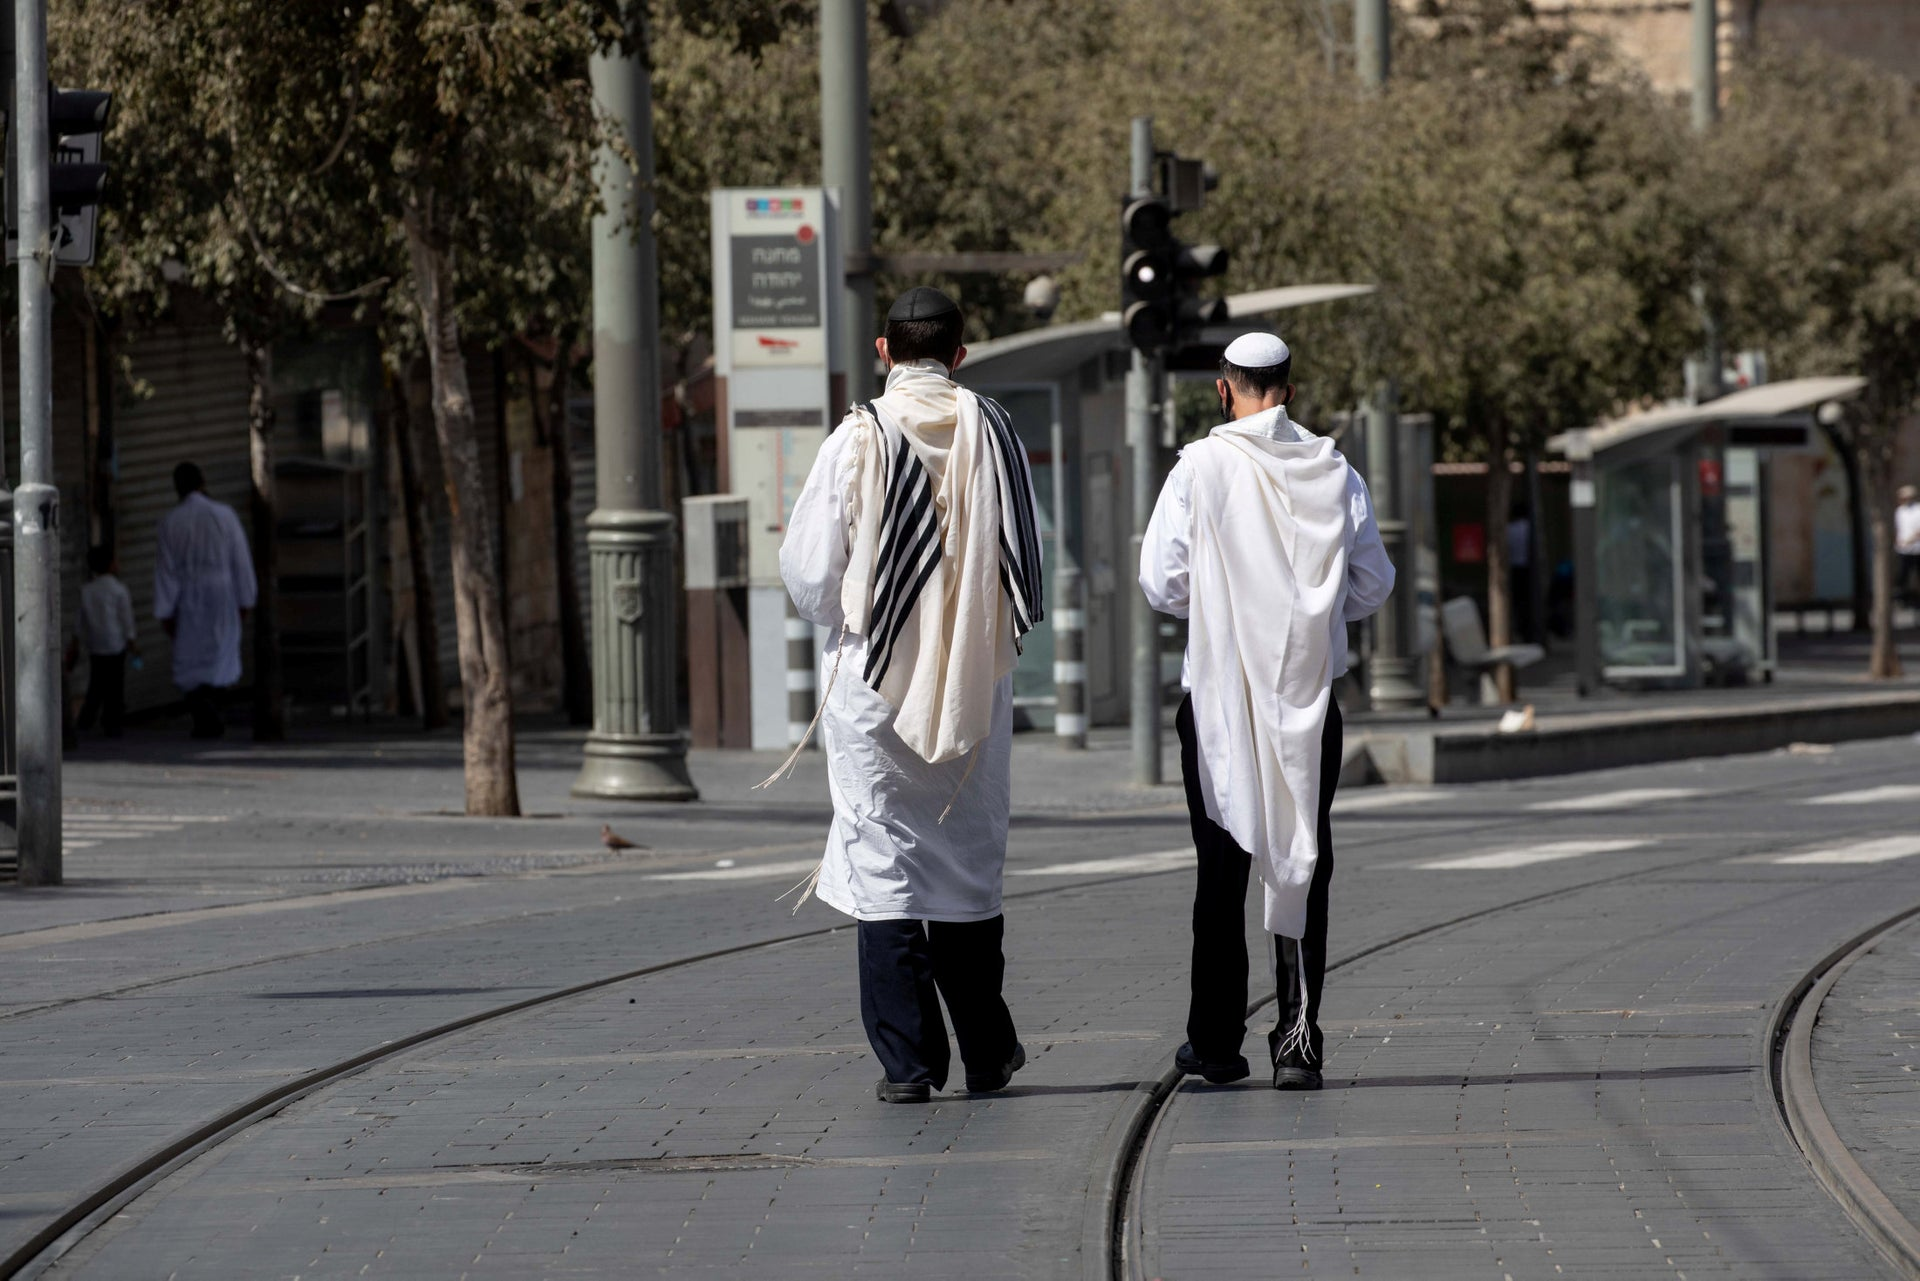 Ultra-Orthodox men walk in the streets of Jerusalem on Yom Kippur, September 28, 2020.